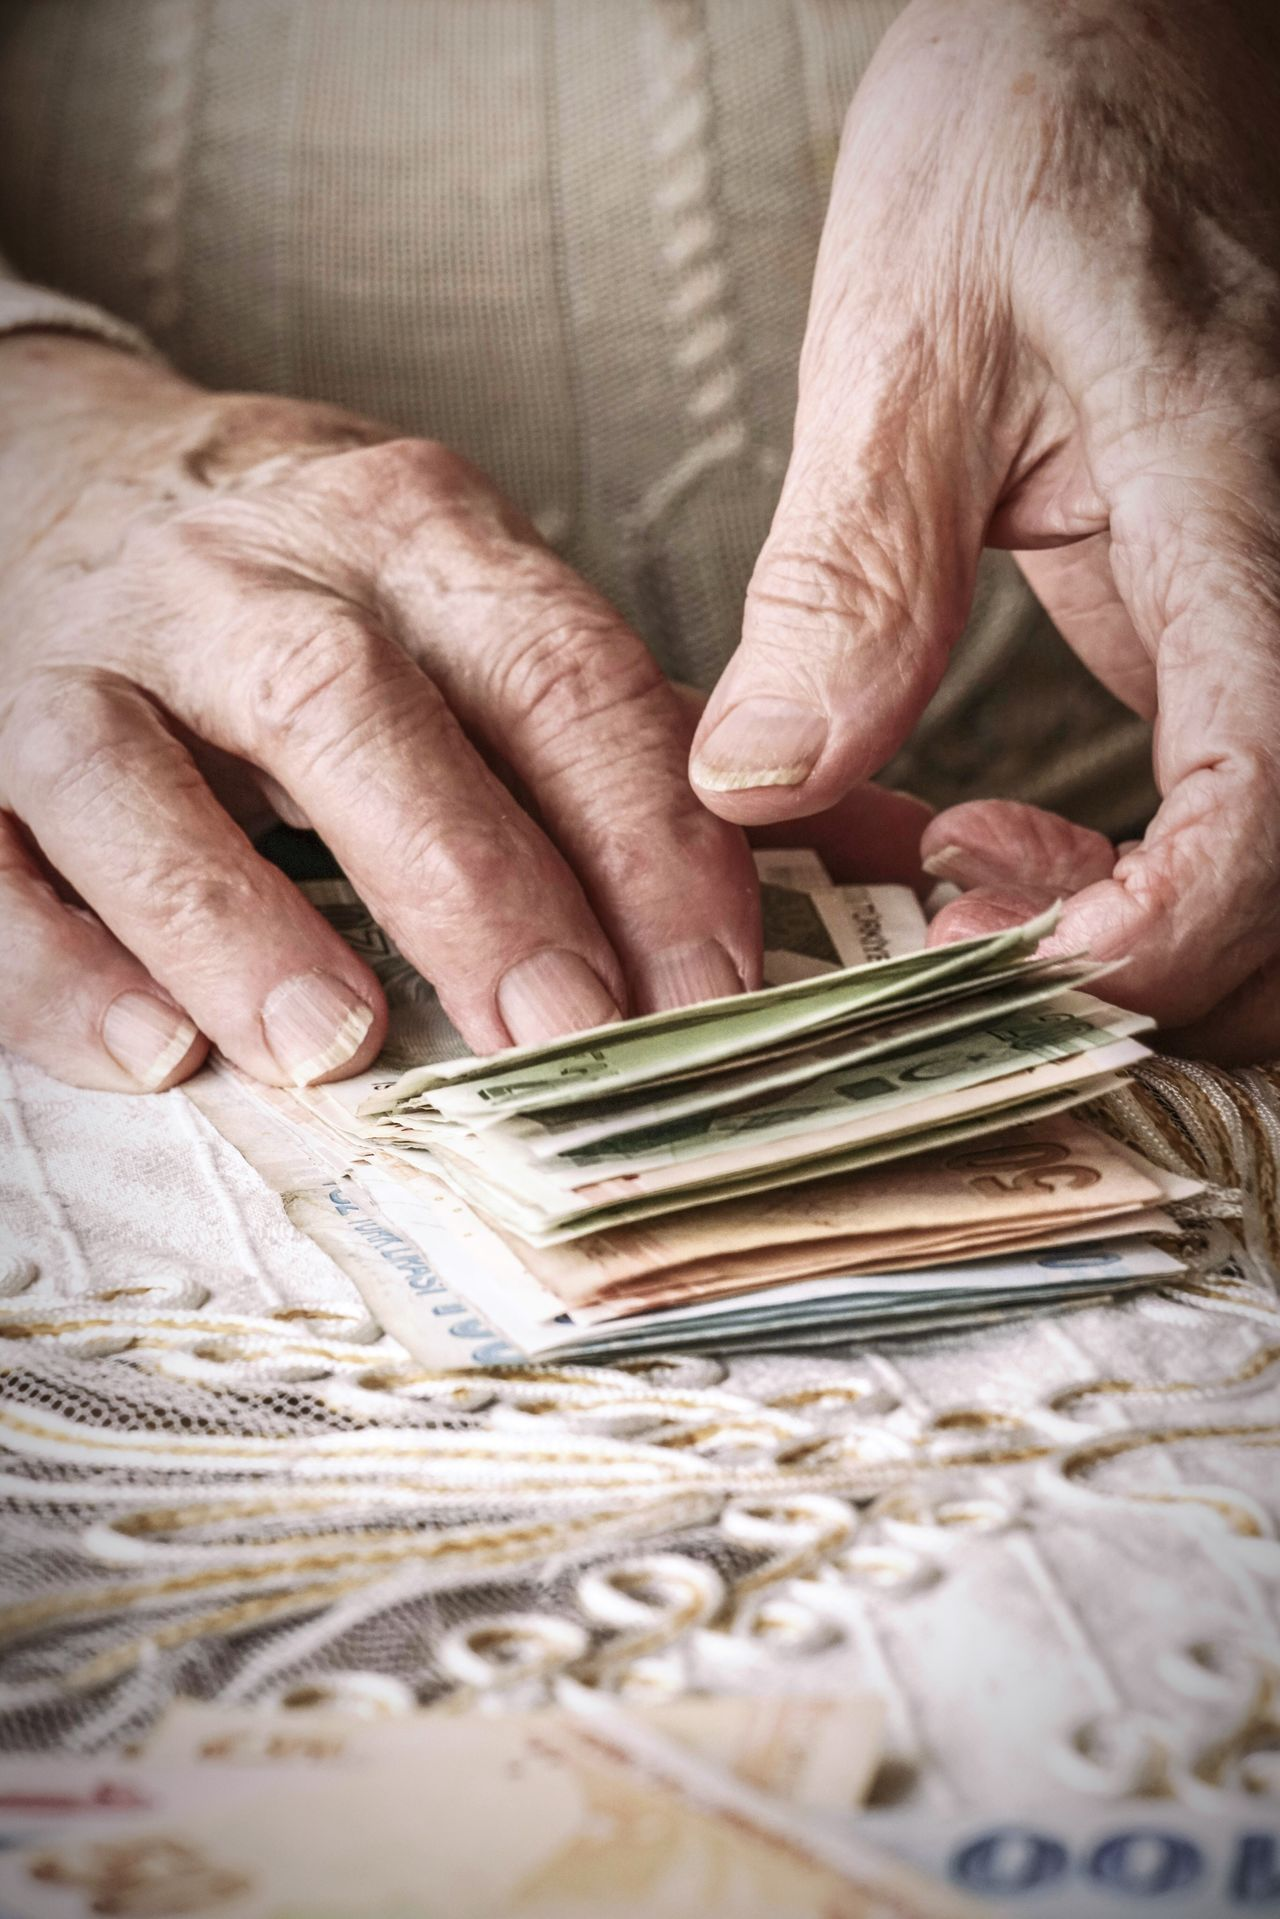 Human Hand Senior Adult Wrinkled Senior Women Close-up Holding People Money TurkishLira Currency Counting Salary Fingers Man Woman Wrinkles Wrinkled Skin Earnings Fresh On Market 2017